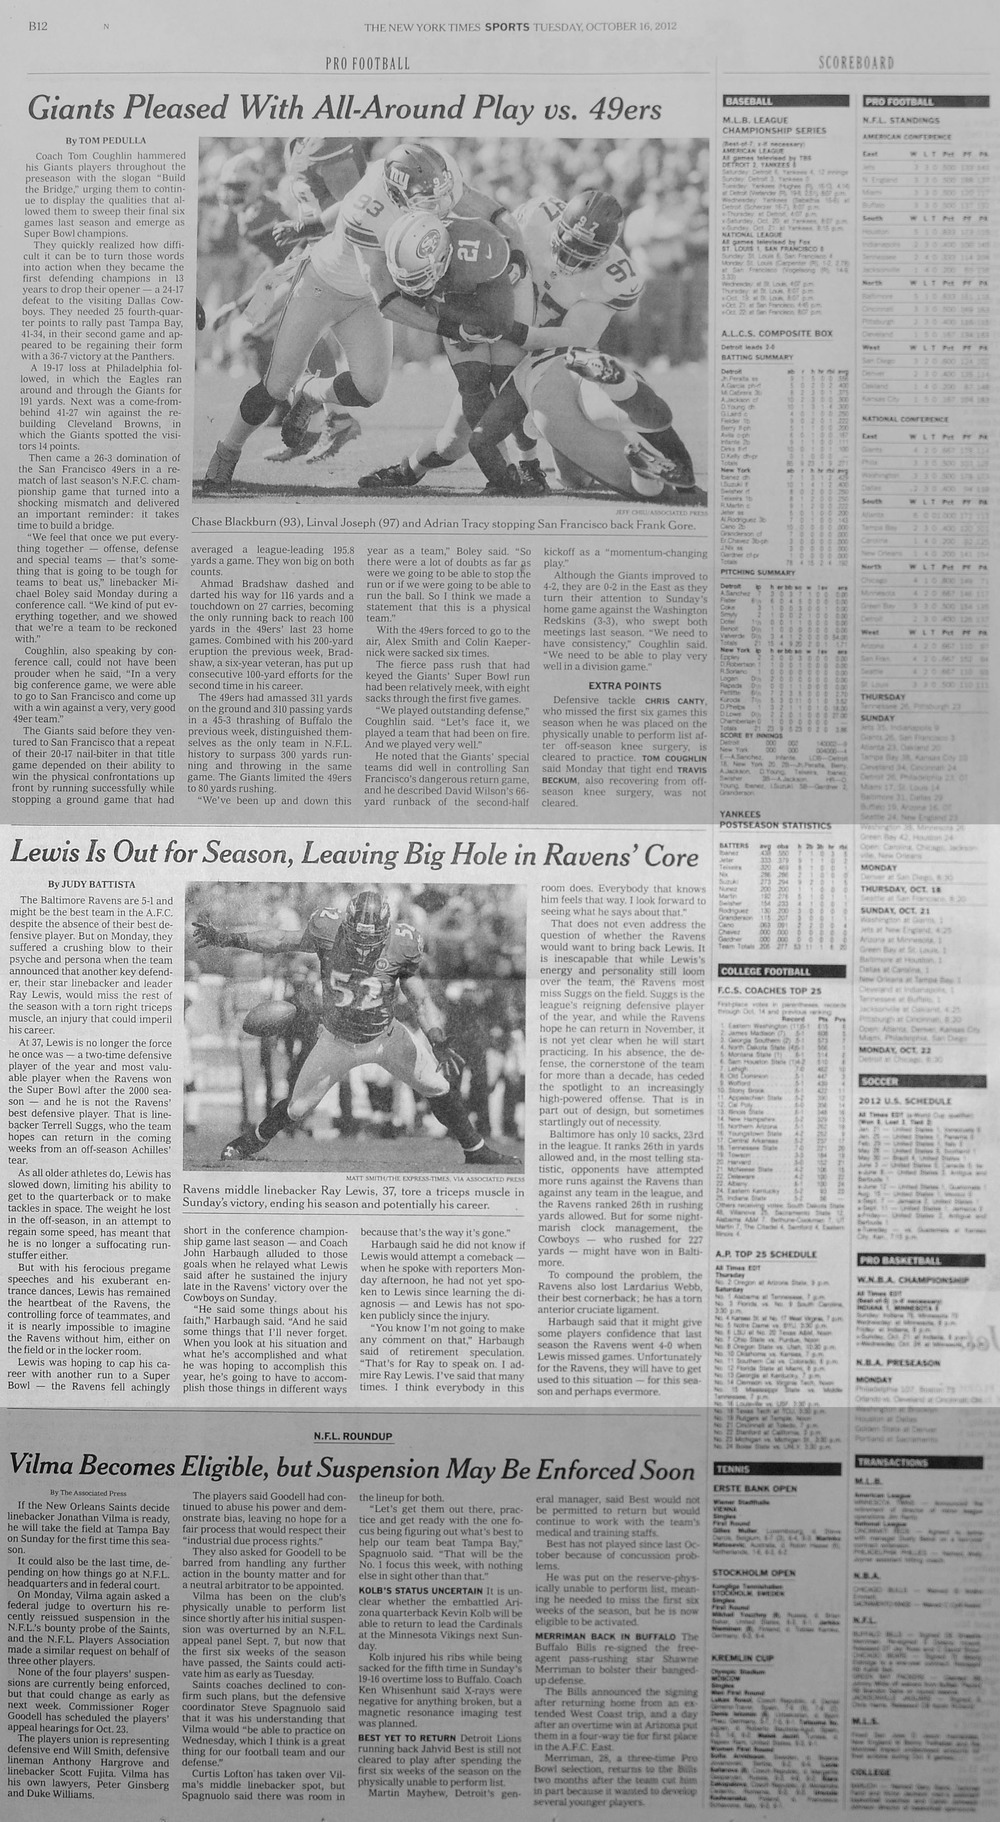 The New York Times, Tuesday, October 16th, 2012. An injury leads to the announcement that veteran Baltimore Ravens linebacker Ray Lewis might be out for the season.